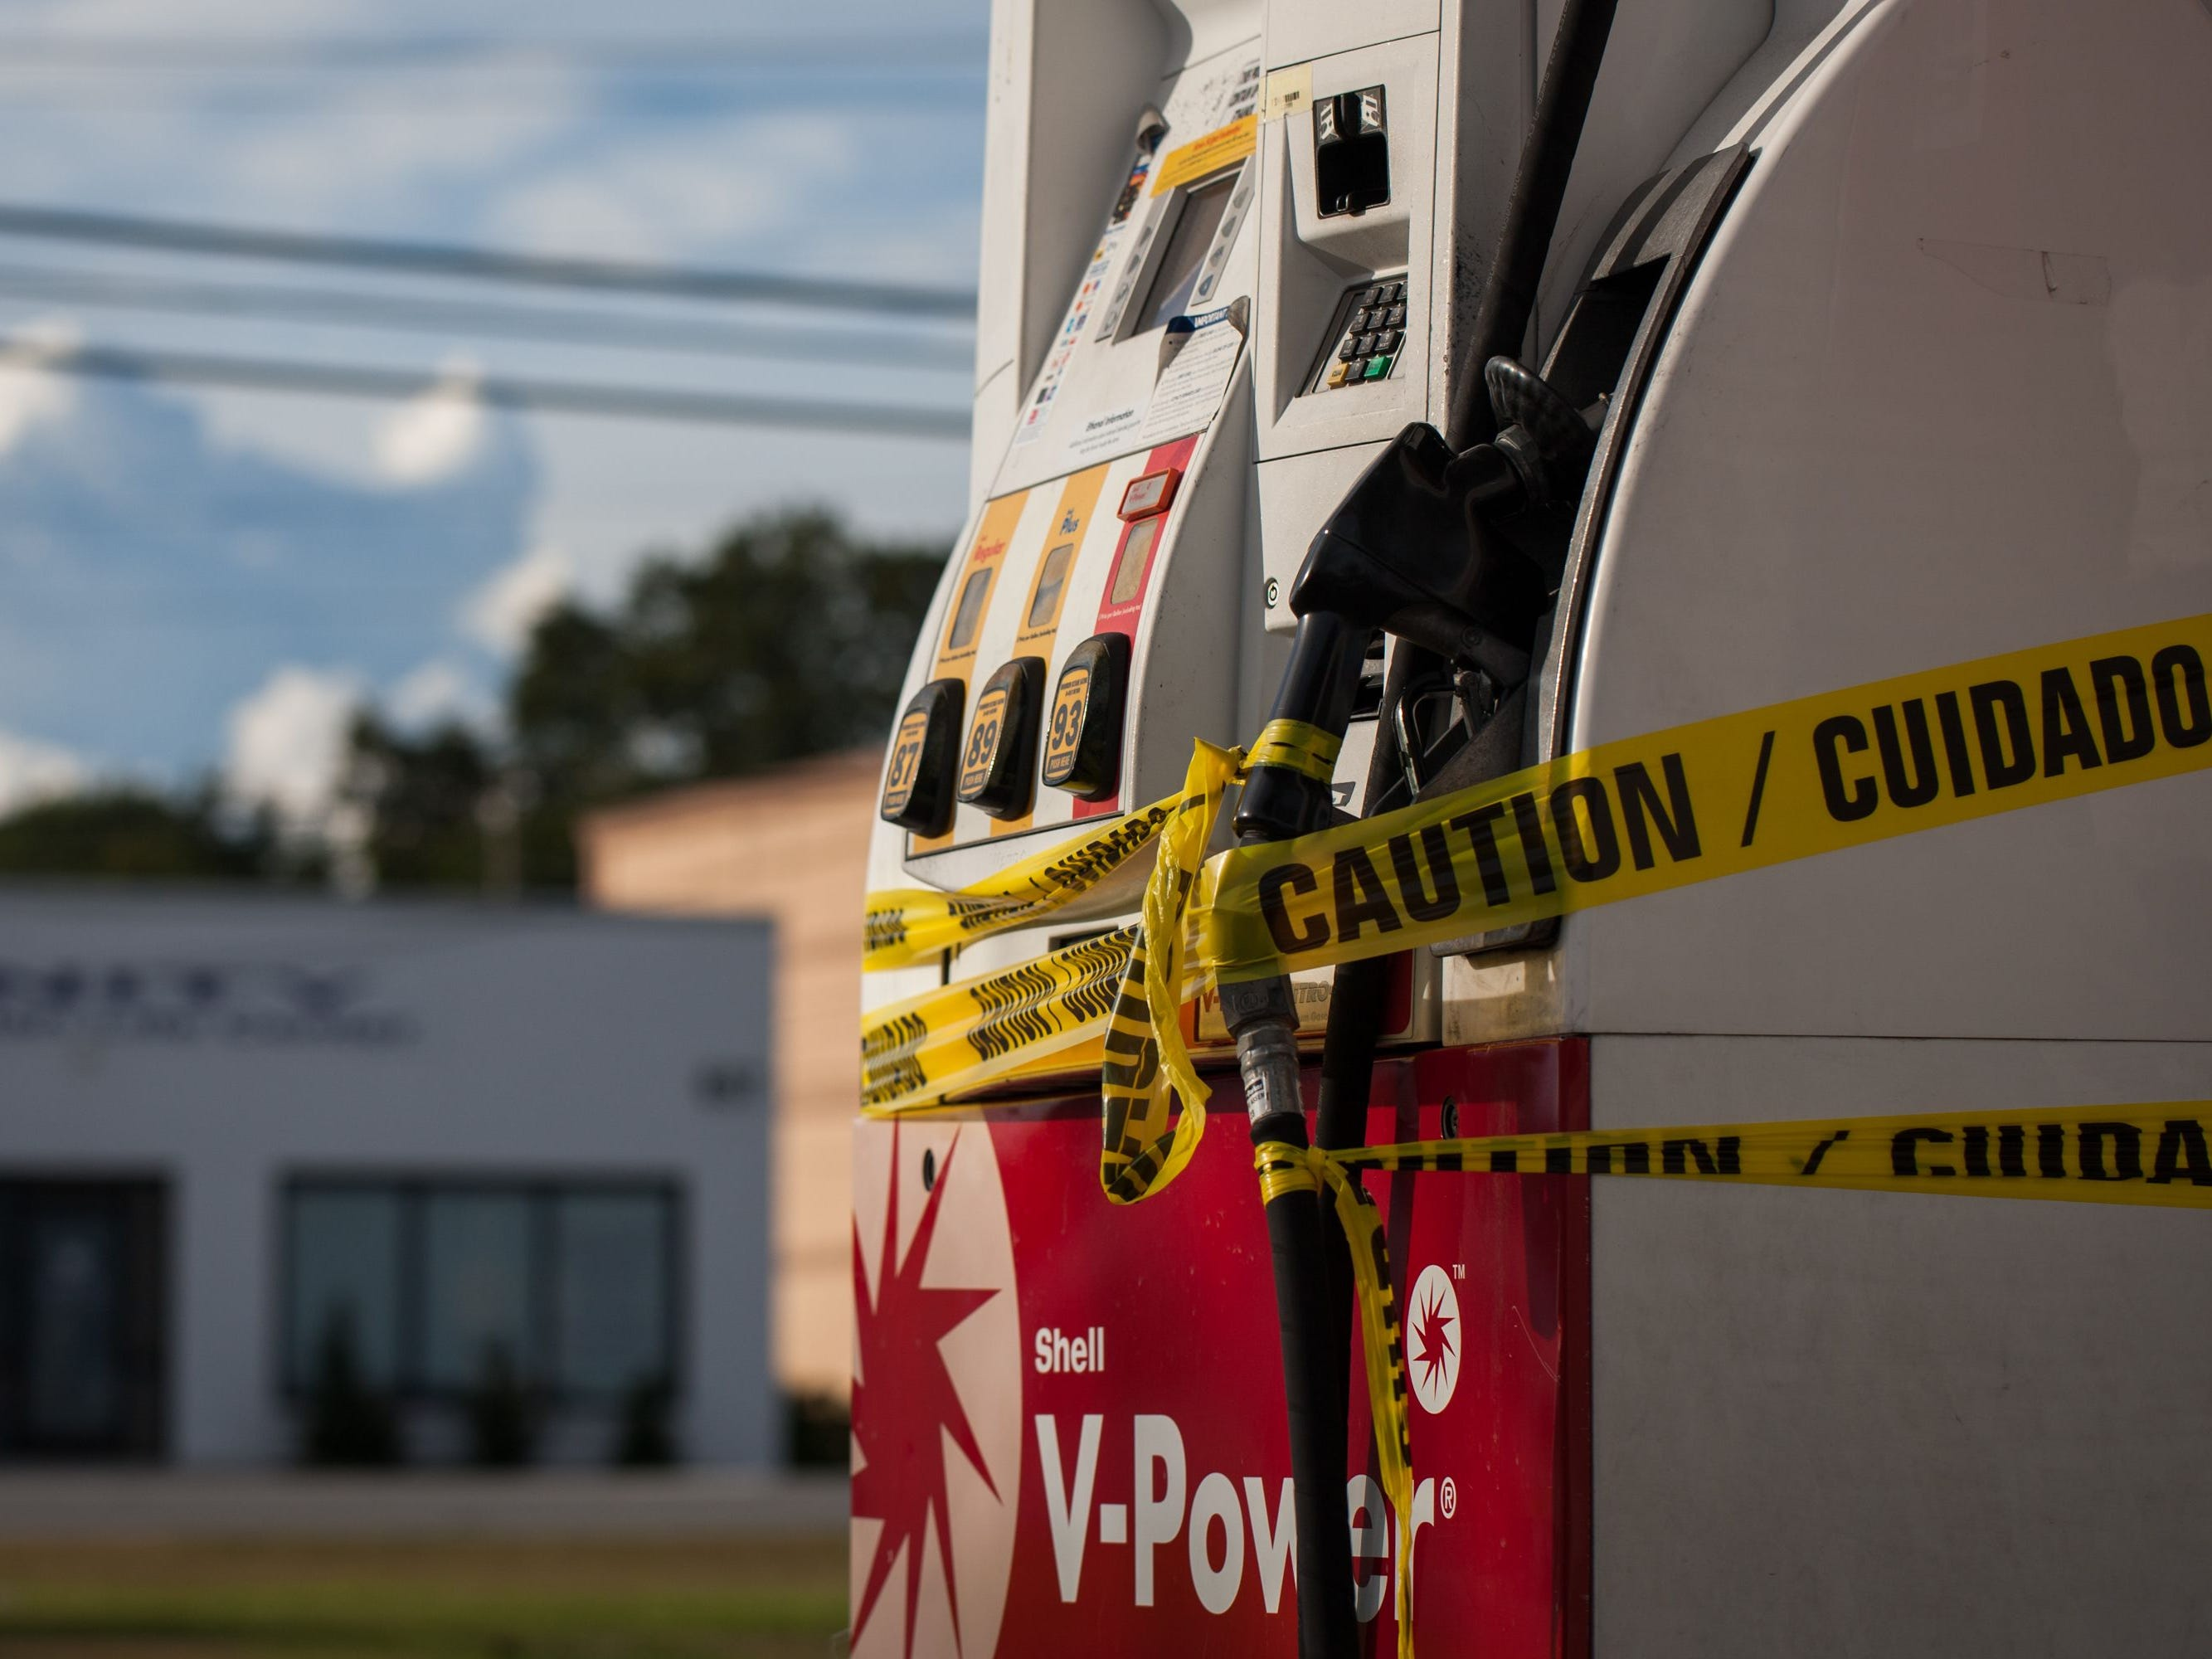 A gas station sits empty with its fuel pumps wrapped in caution tape in Jacksonville, N.C., on Sept. 12, 2018, in advance of Hurricane Florence.